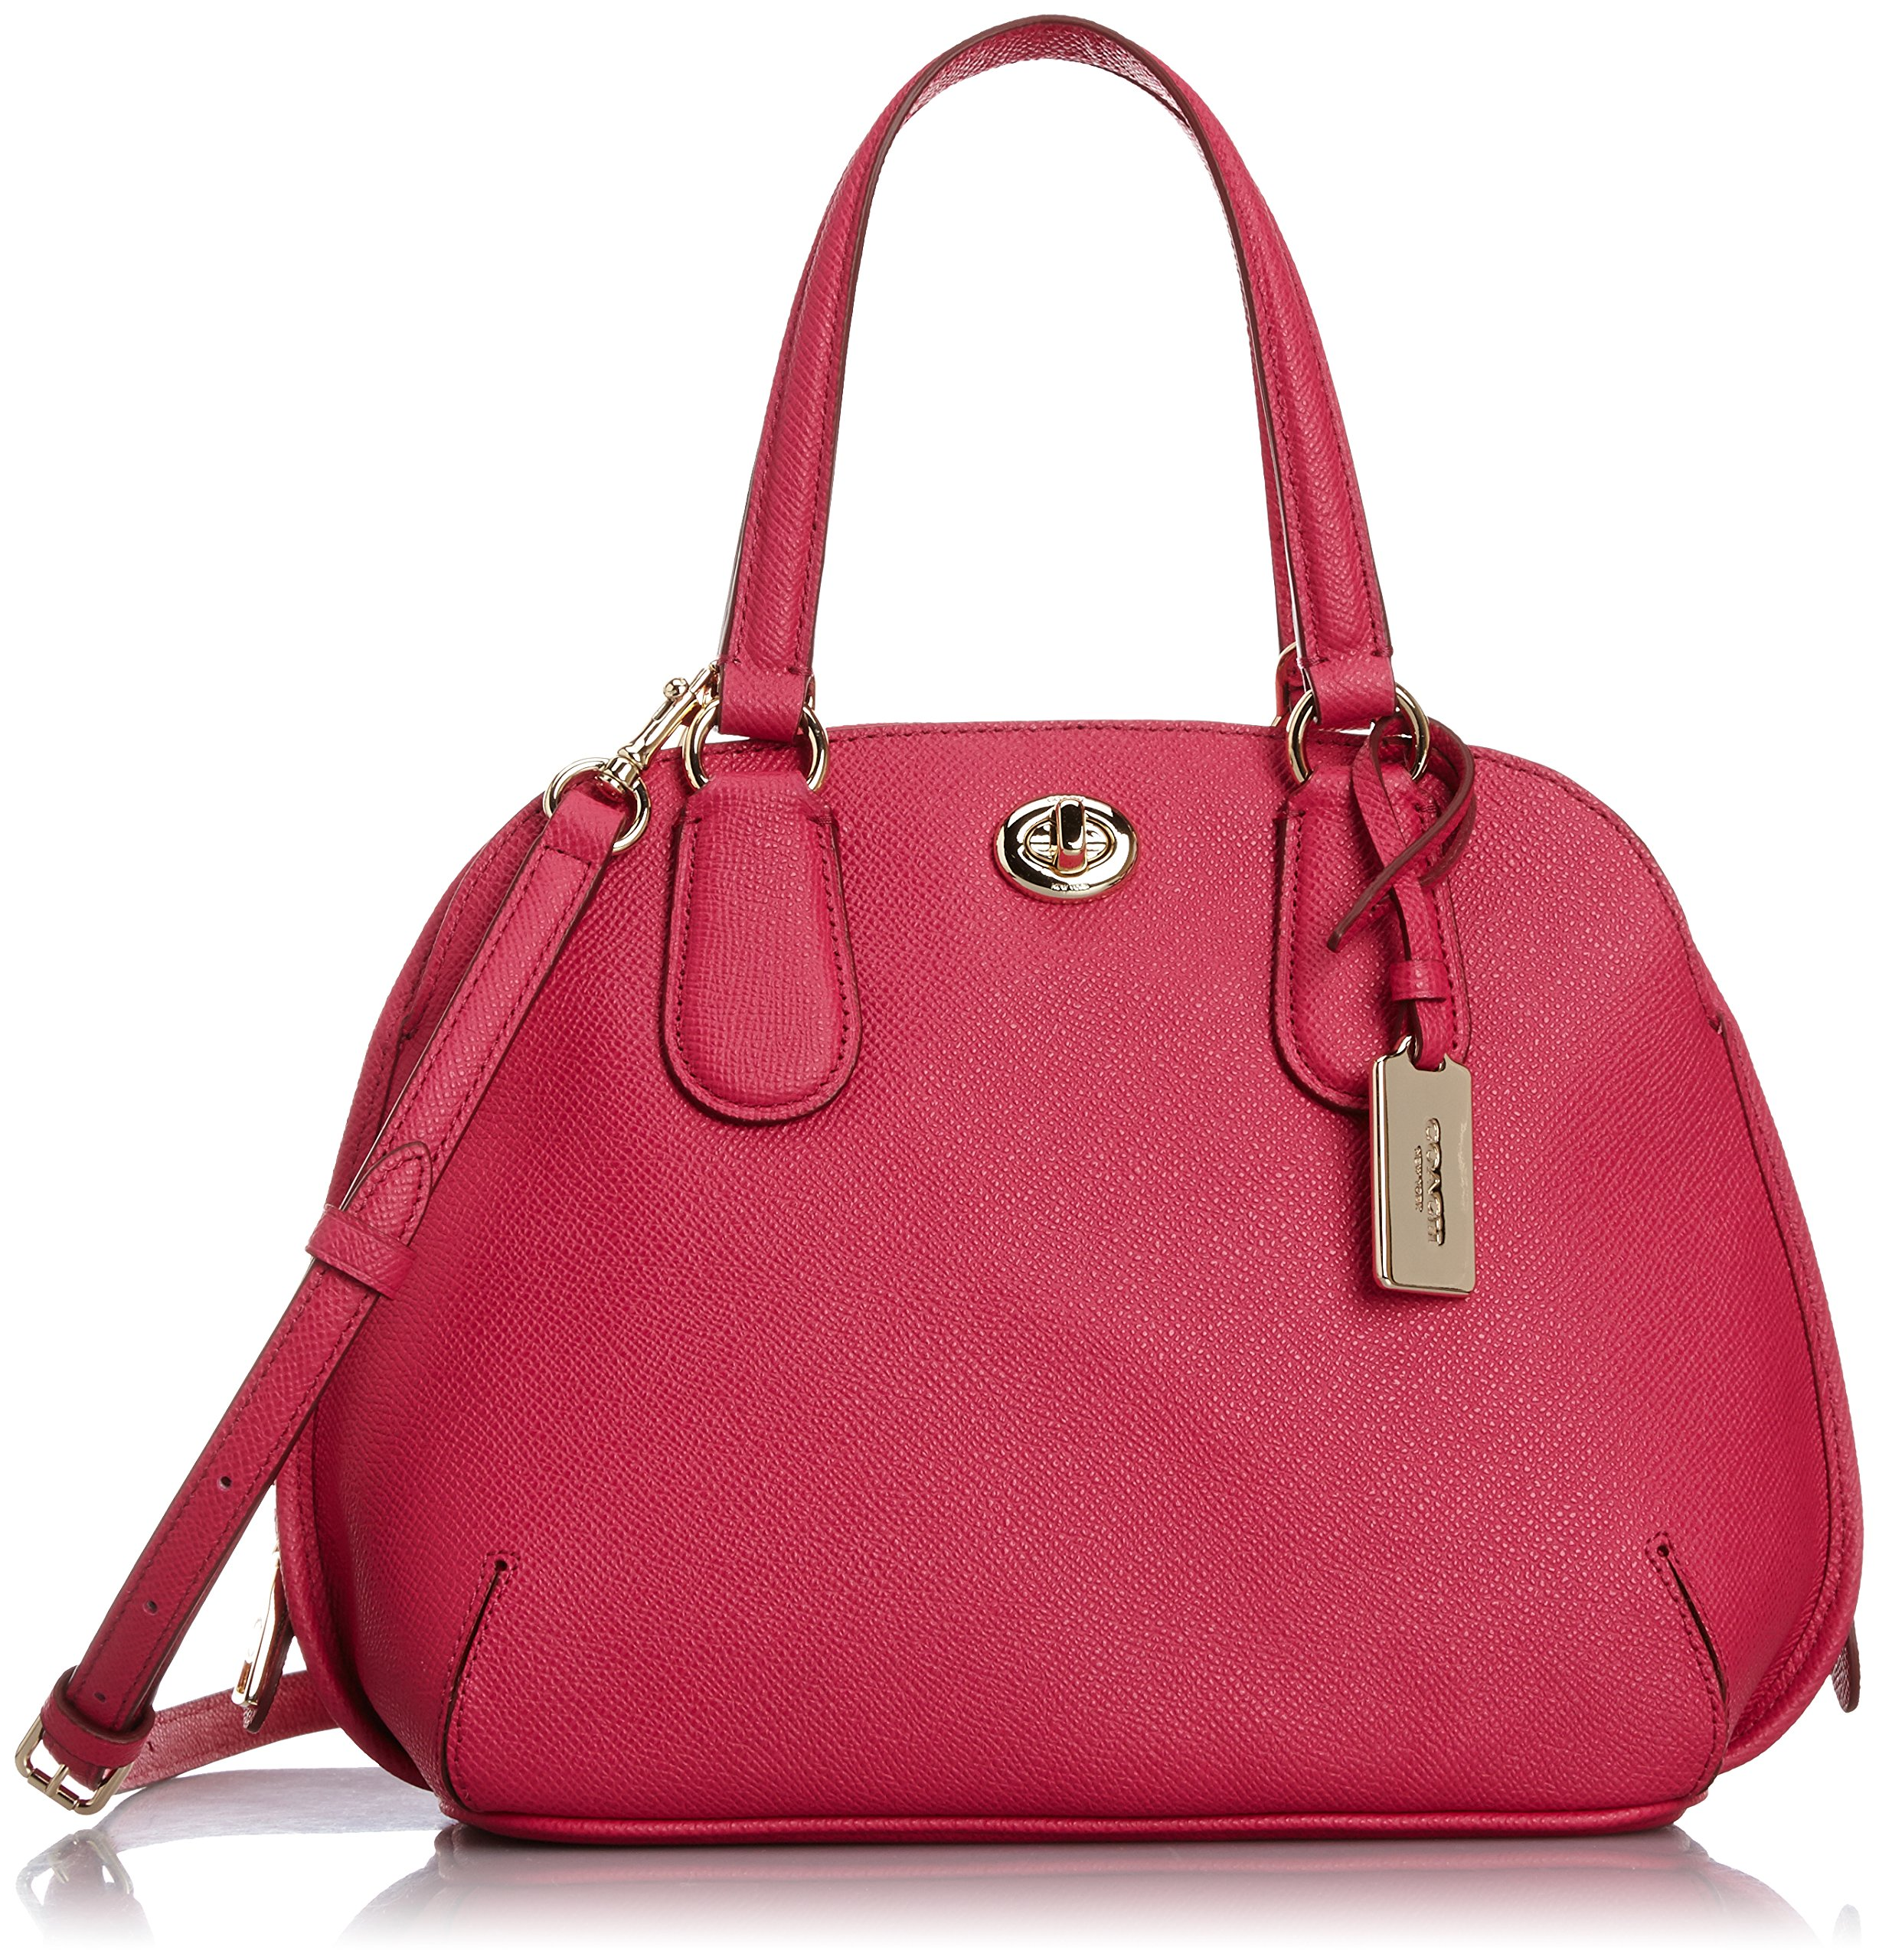 Coach Womens Leather Convertible Satchel Handbag Pink Small